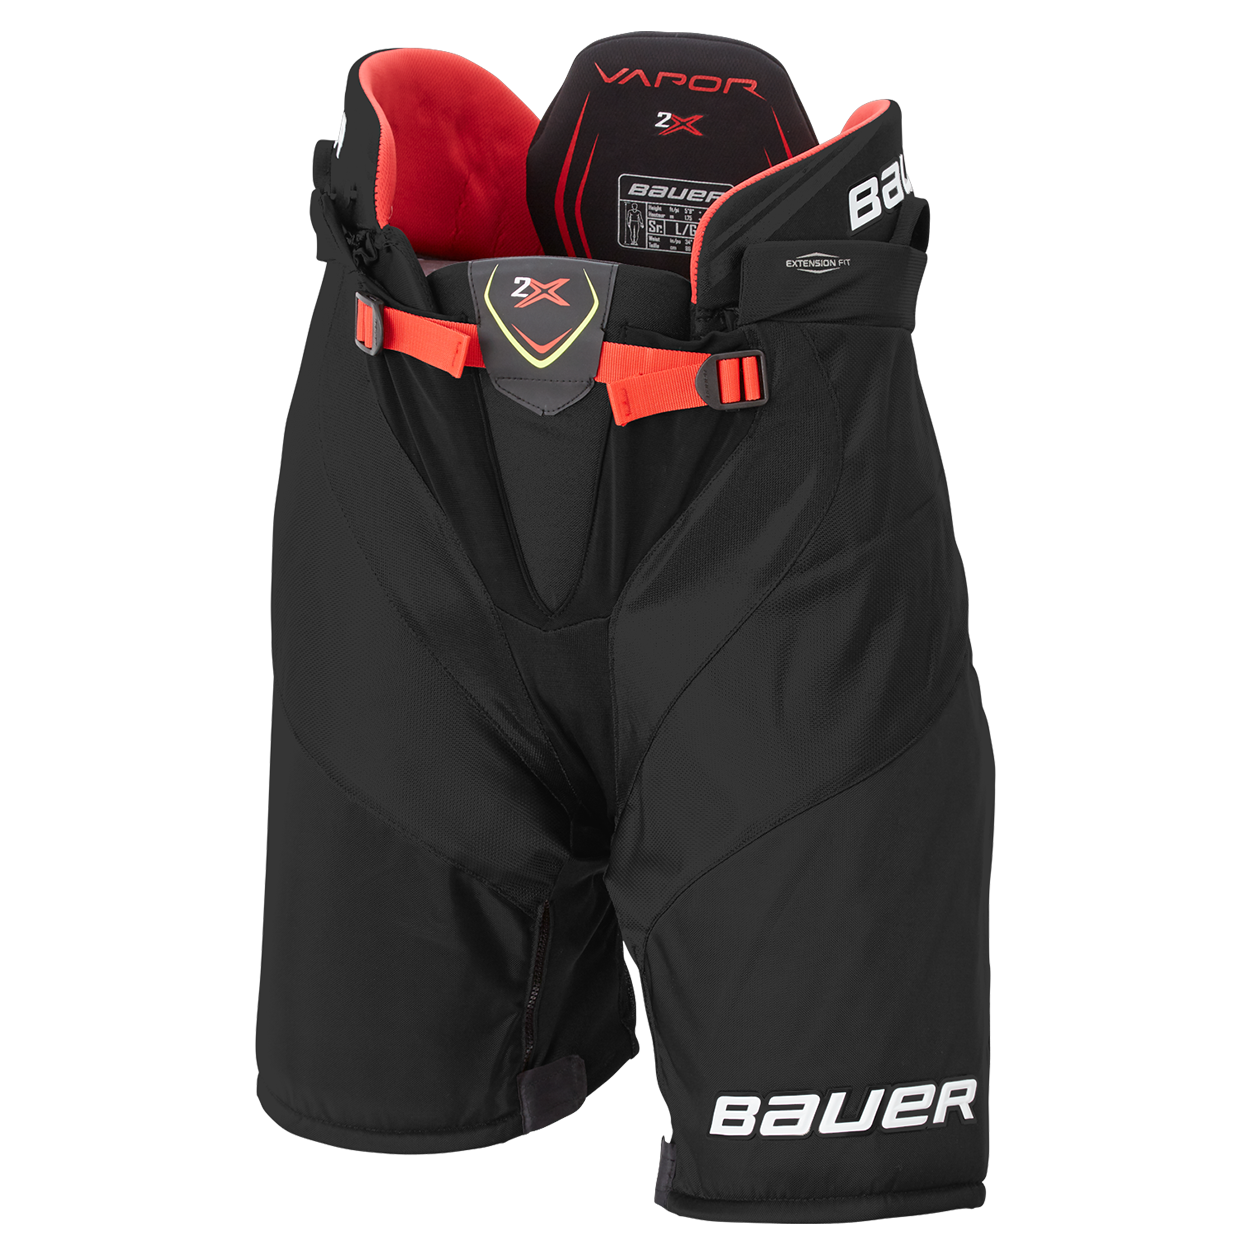 VAPOR 2X Pants Senior